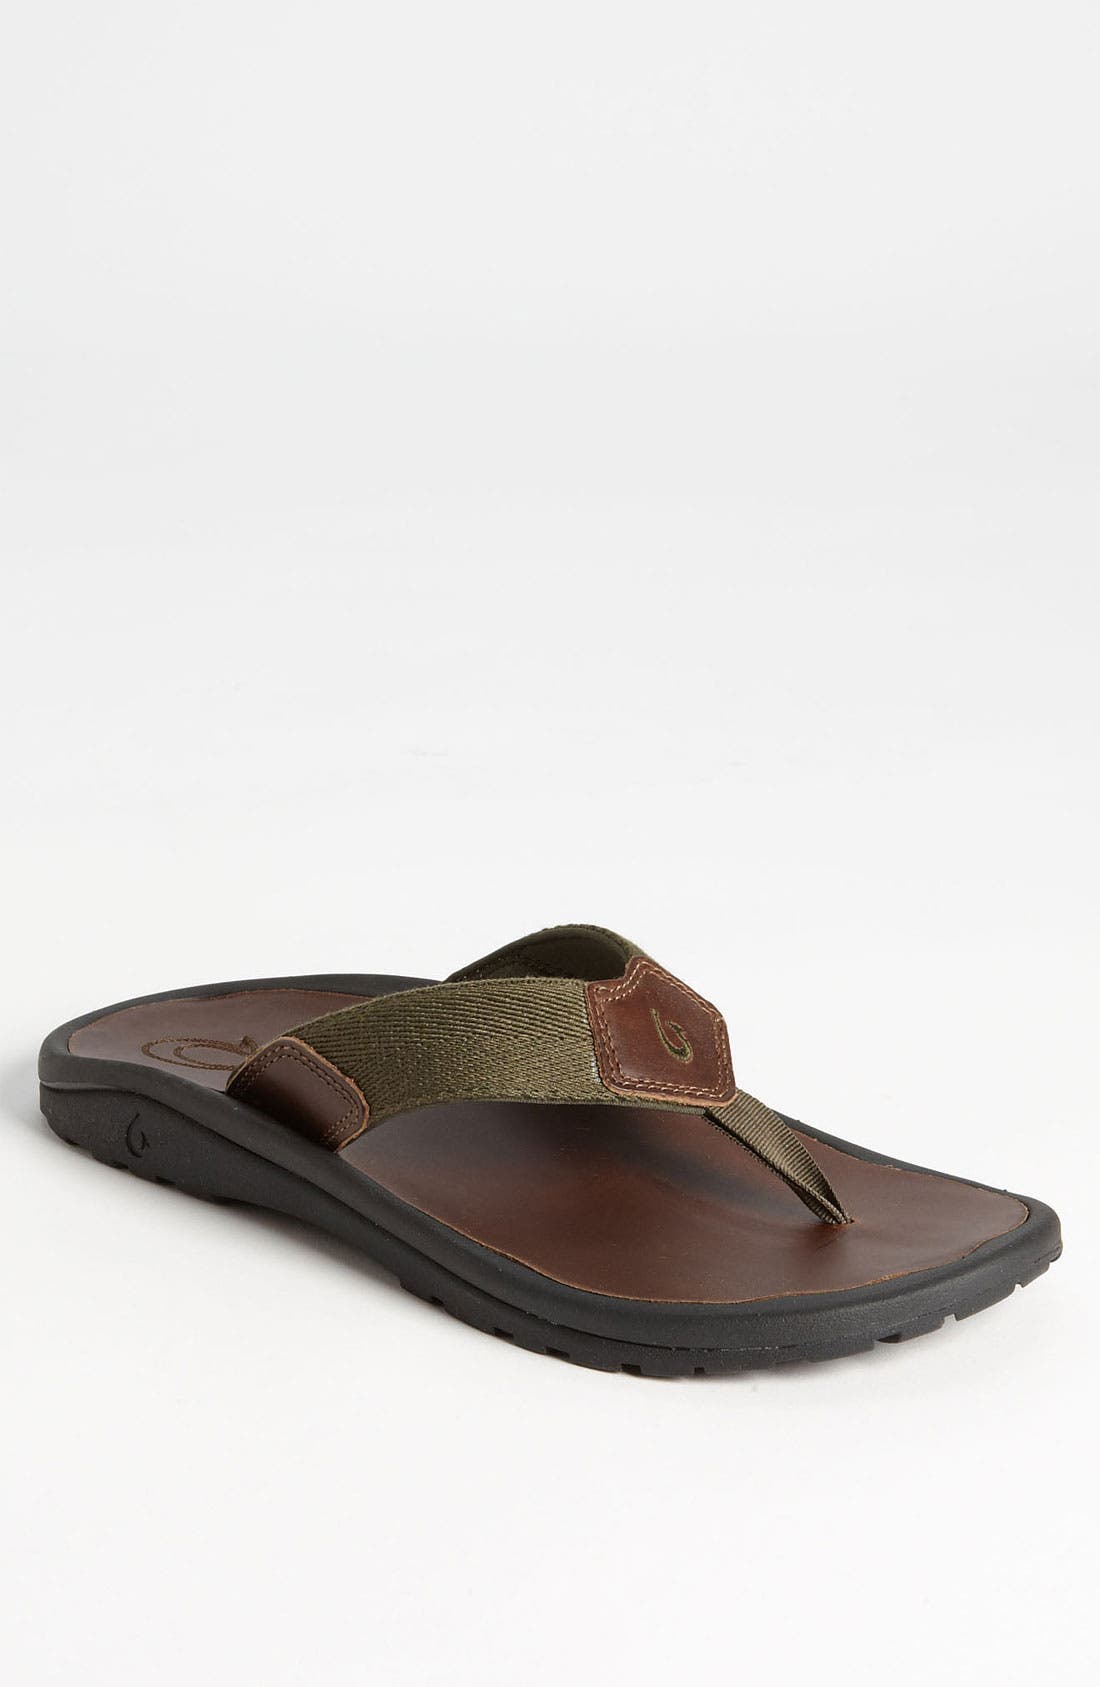 Alternate Image 1 Selected - OluKai 'Kalo' Flip Flop (Men)